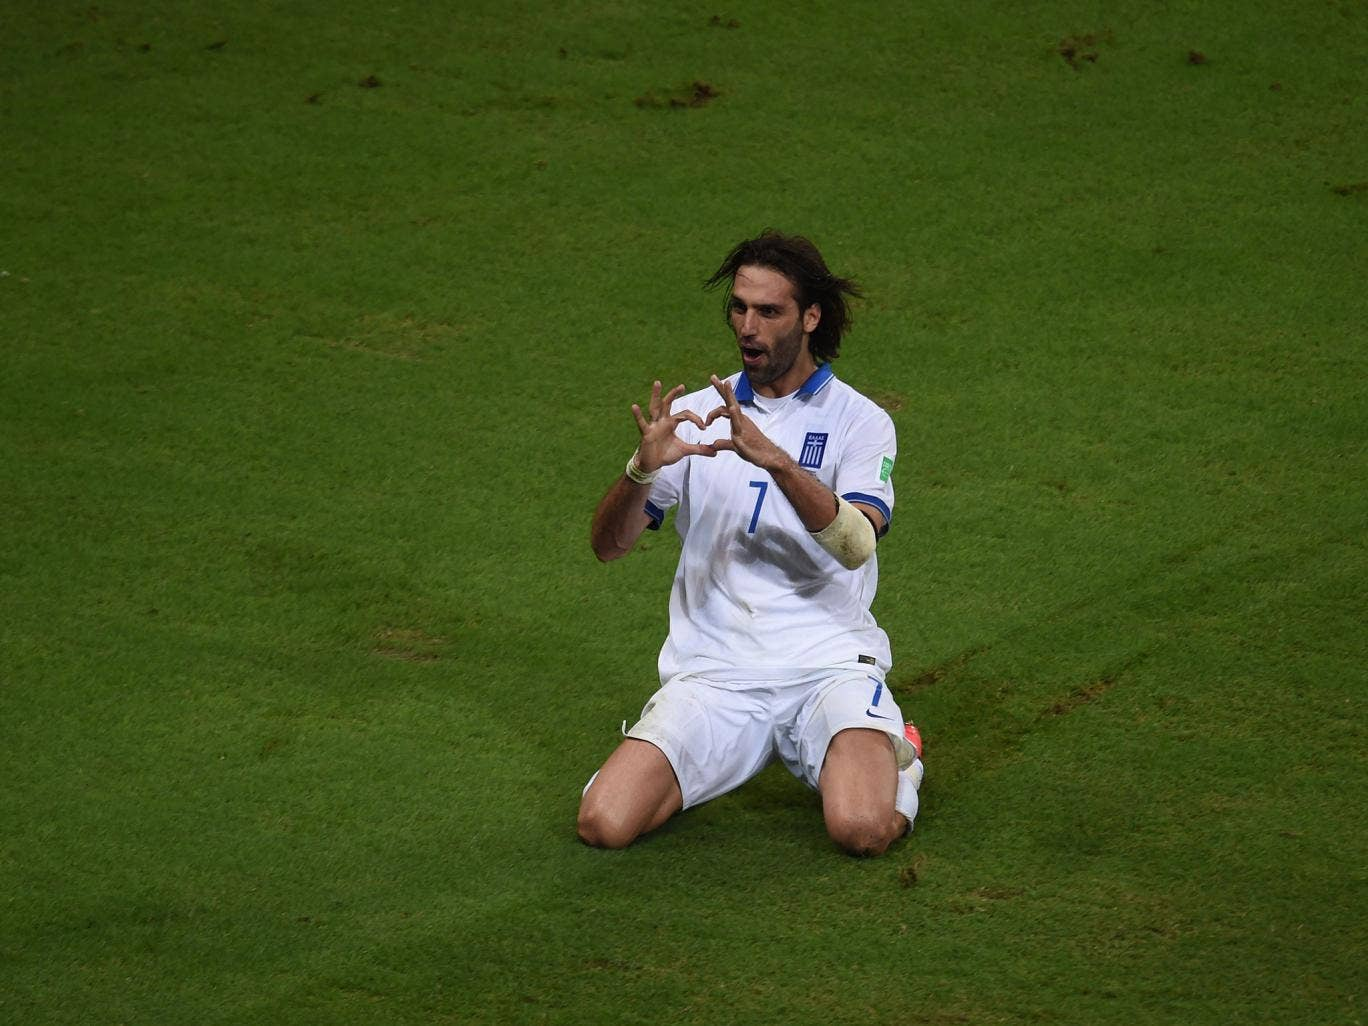 Greece's forward Georgios Samaras celebrates scoring a penalty